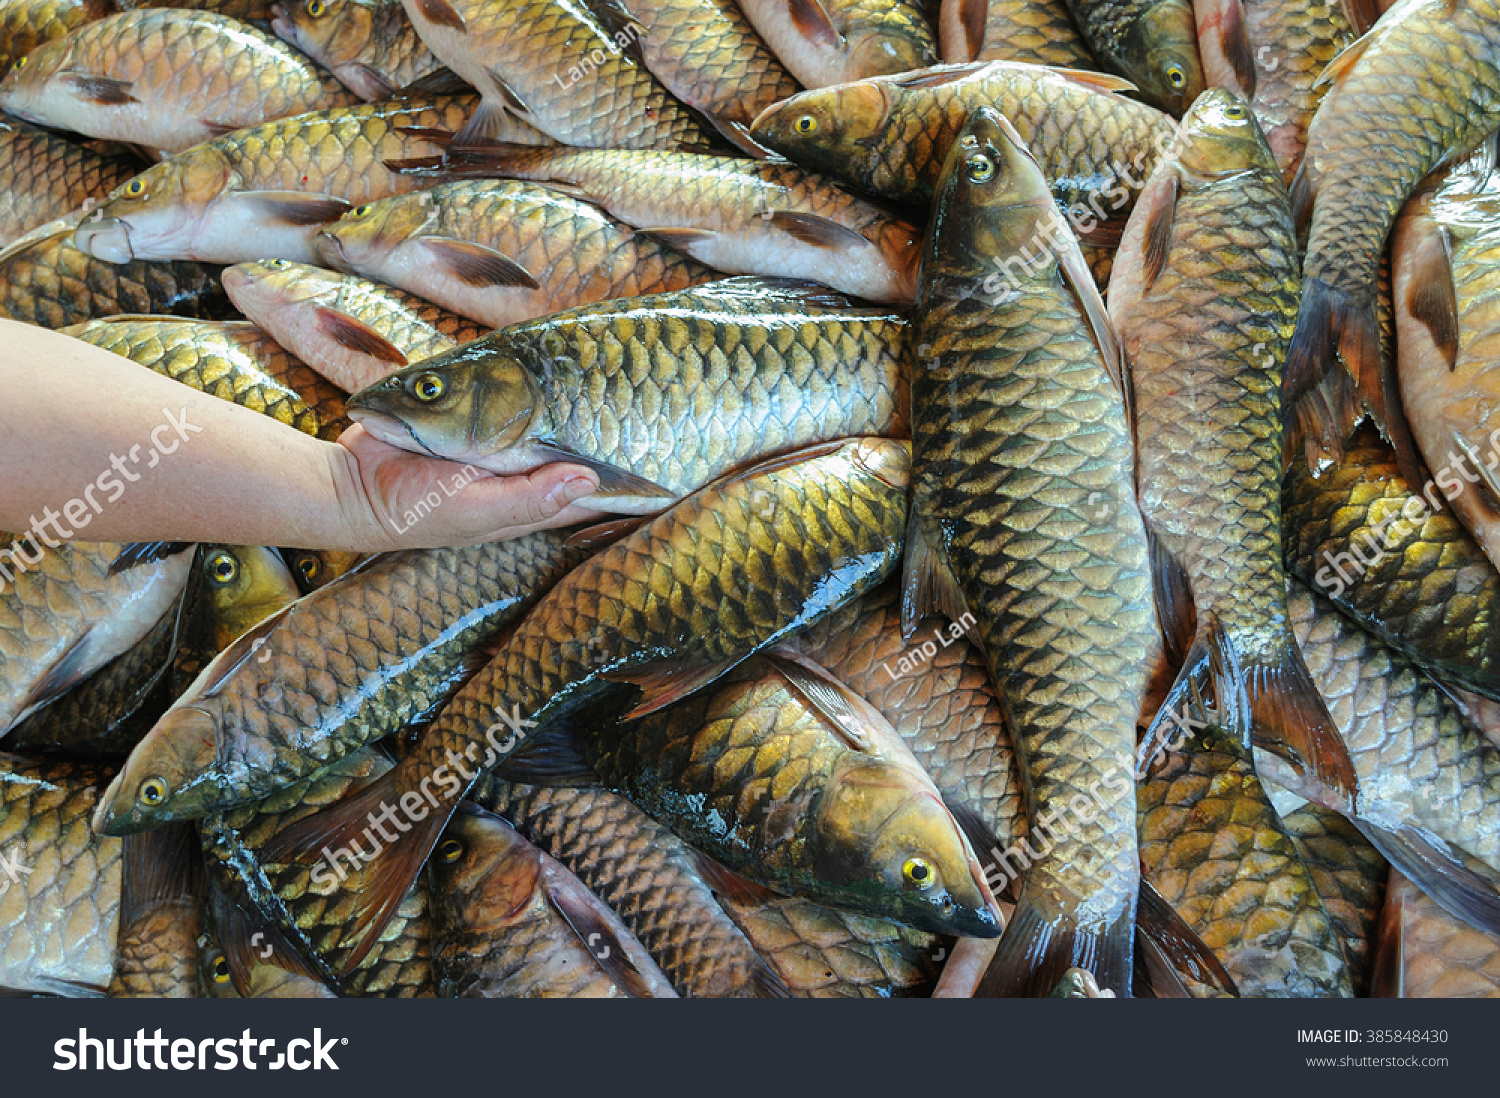 Freshwater fish in malaysia - Hand Holding Fresh Water Fish Called Malaysian Mahseer Or Kelah Or Pelian This Fish Is